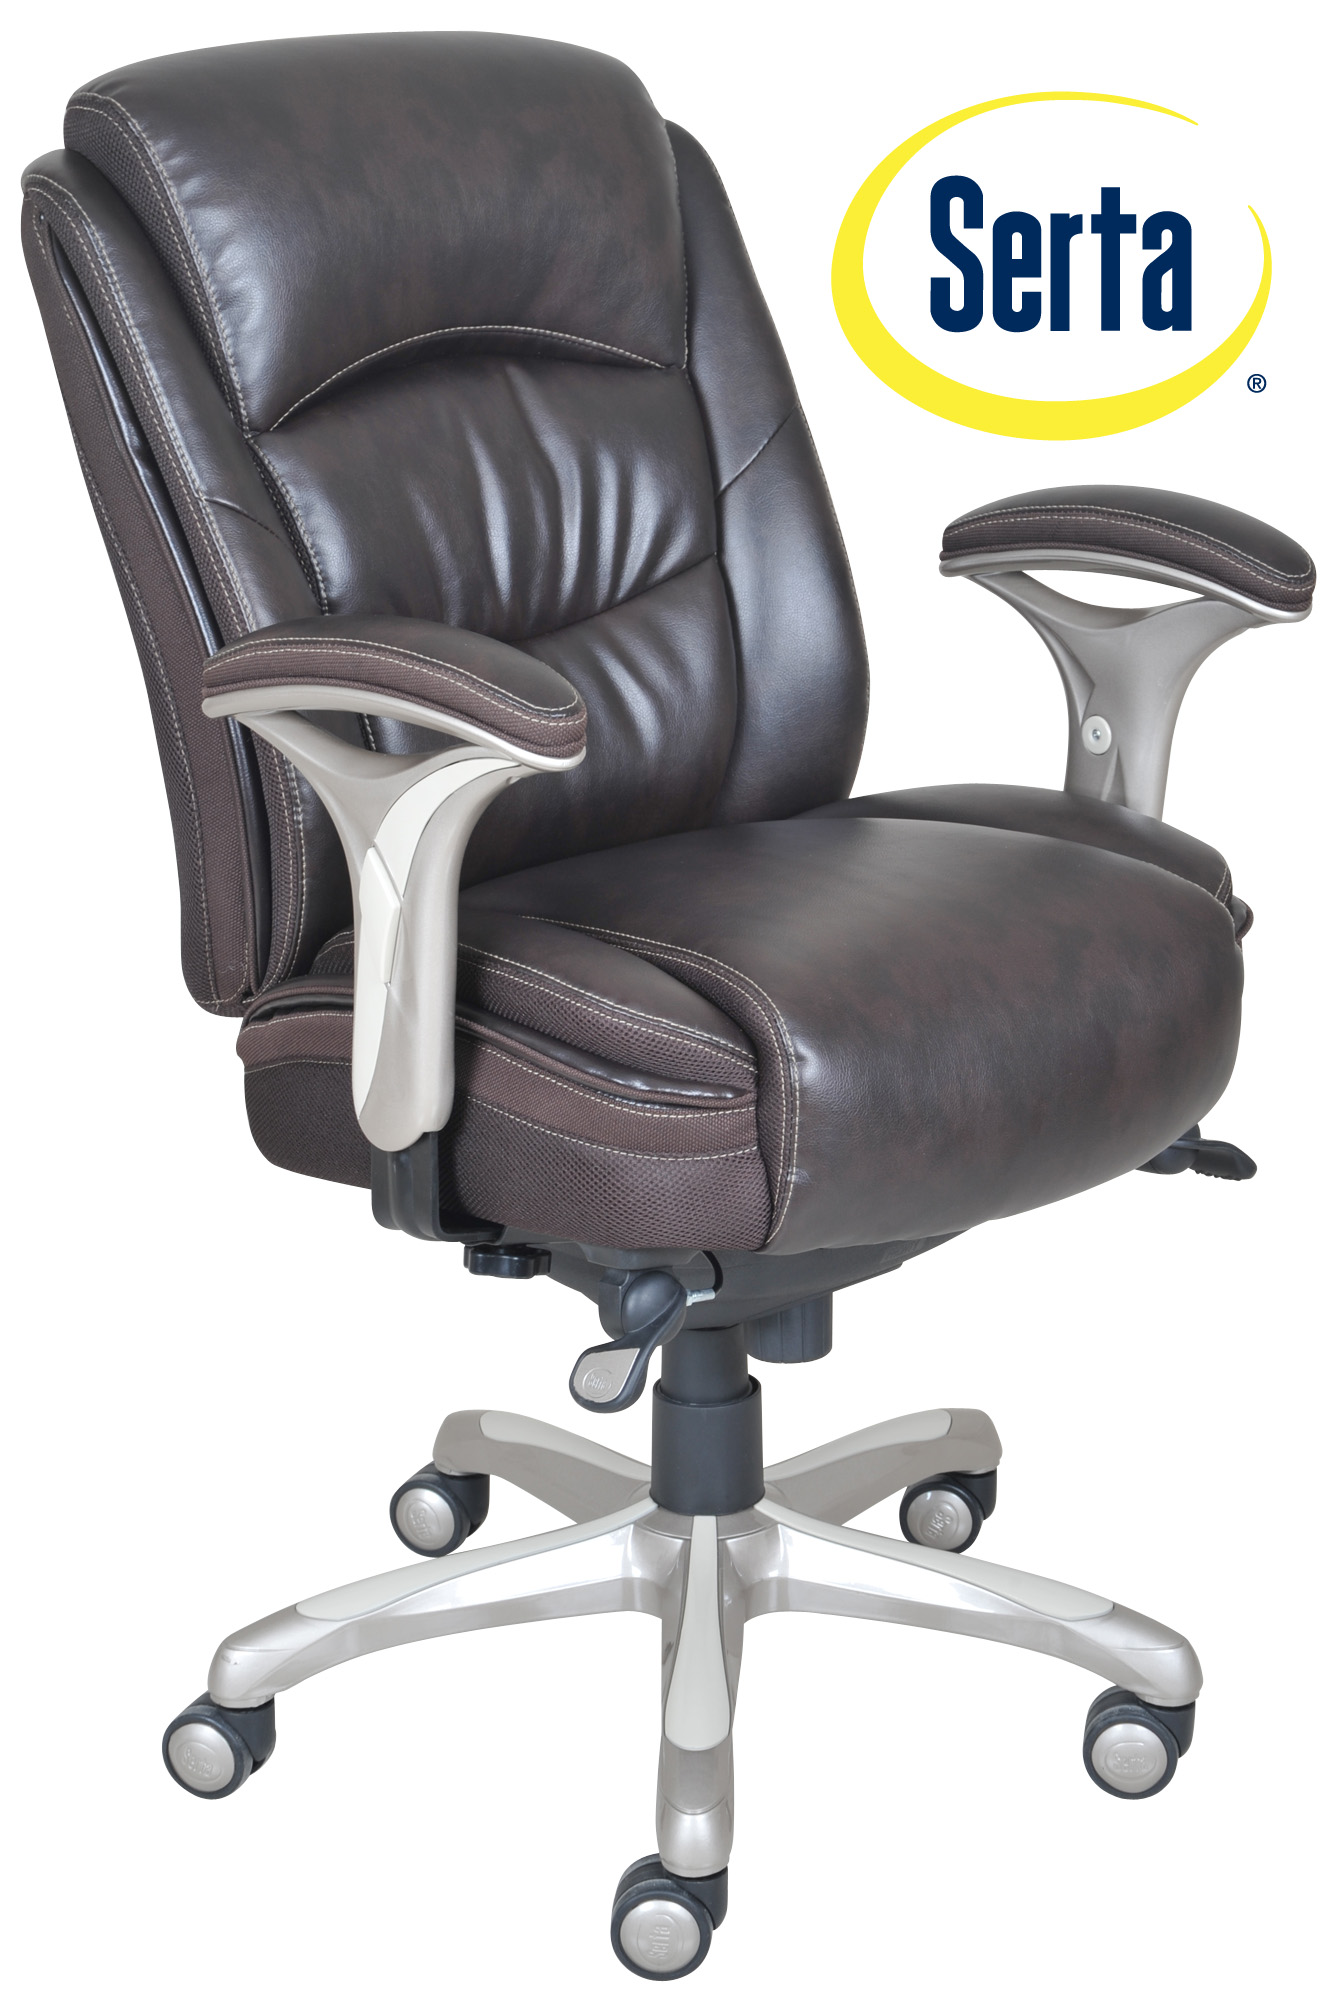 serta bonded leather executive chair cheap dorm chairs smart layers premium elite manager in harmony